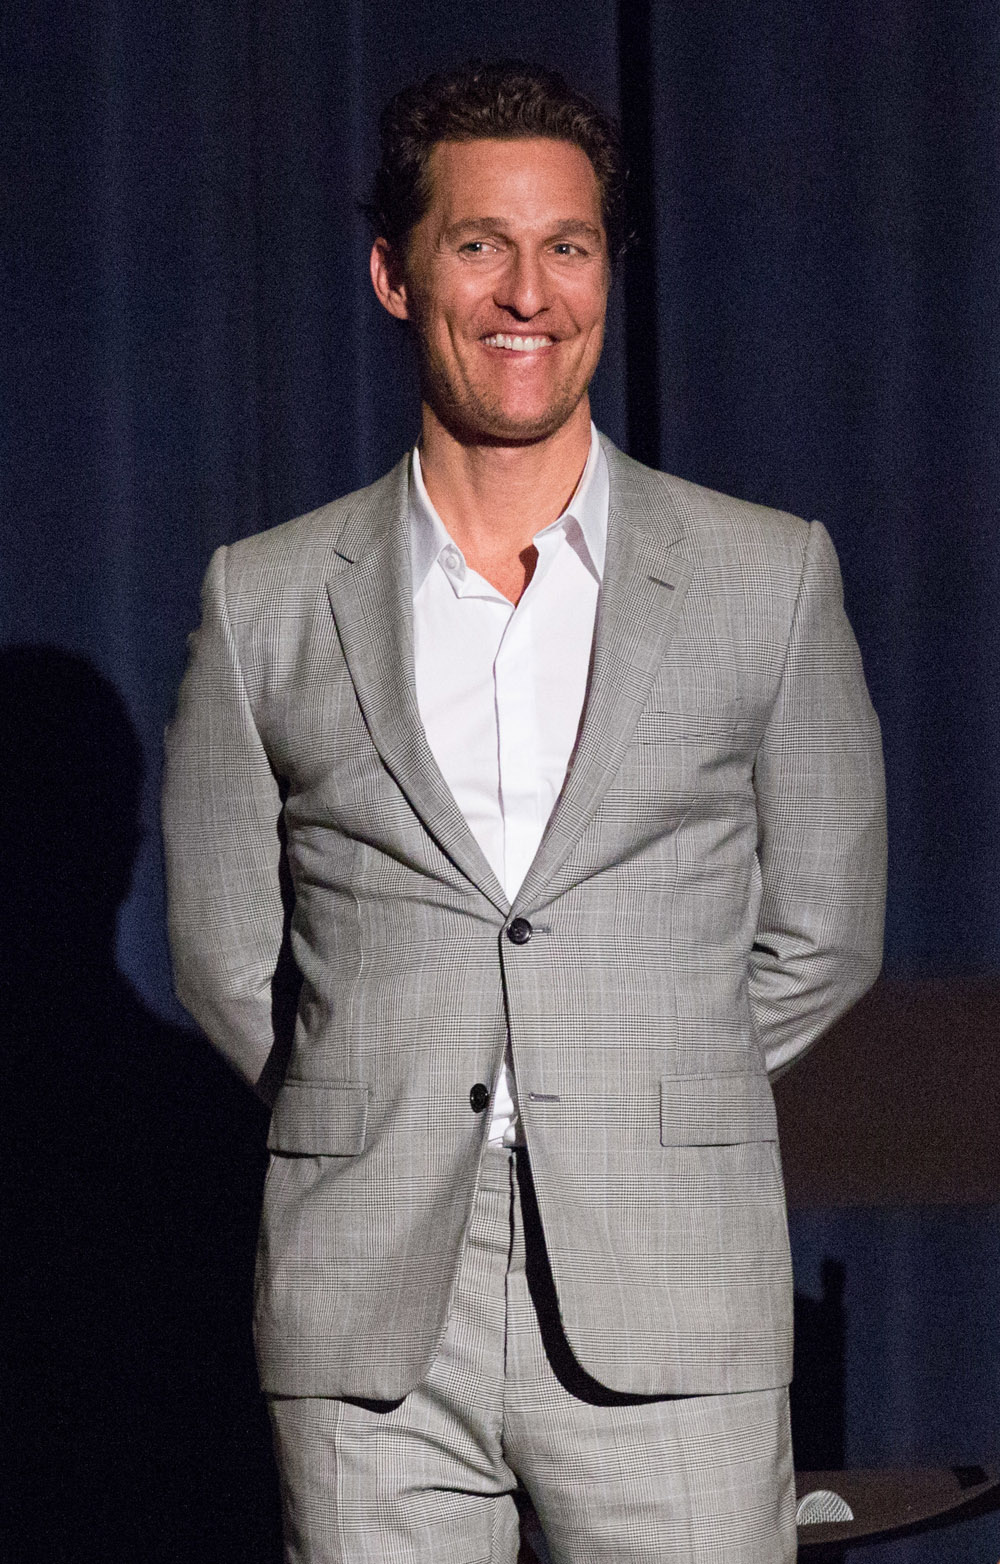 Matthew McConaughey attends a Q&A session for Dallas Buyers Club and